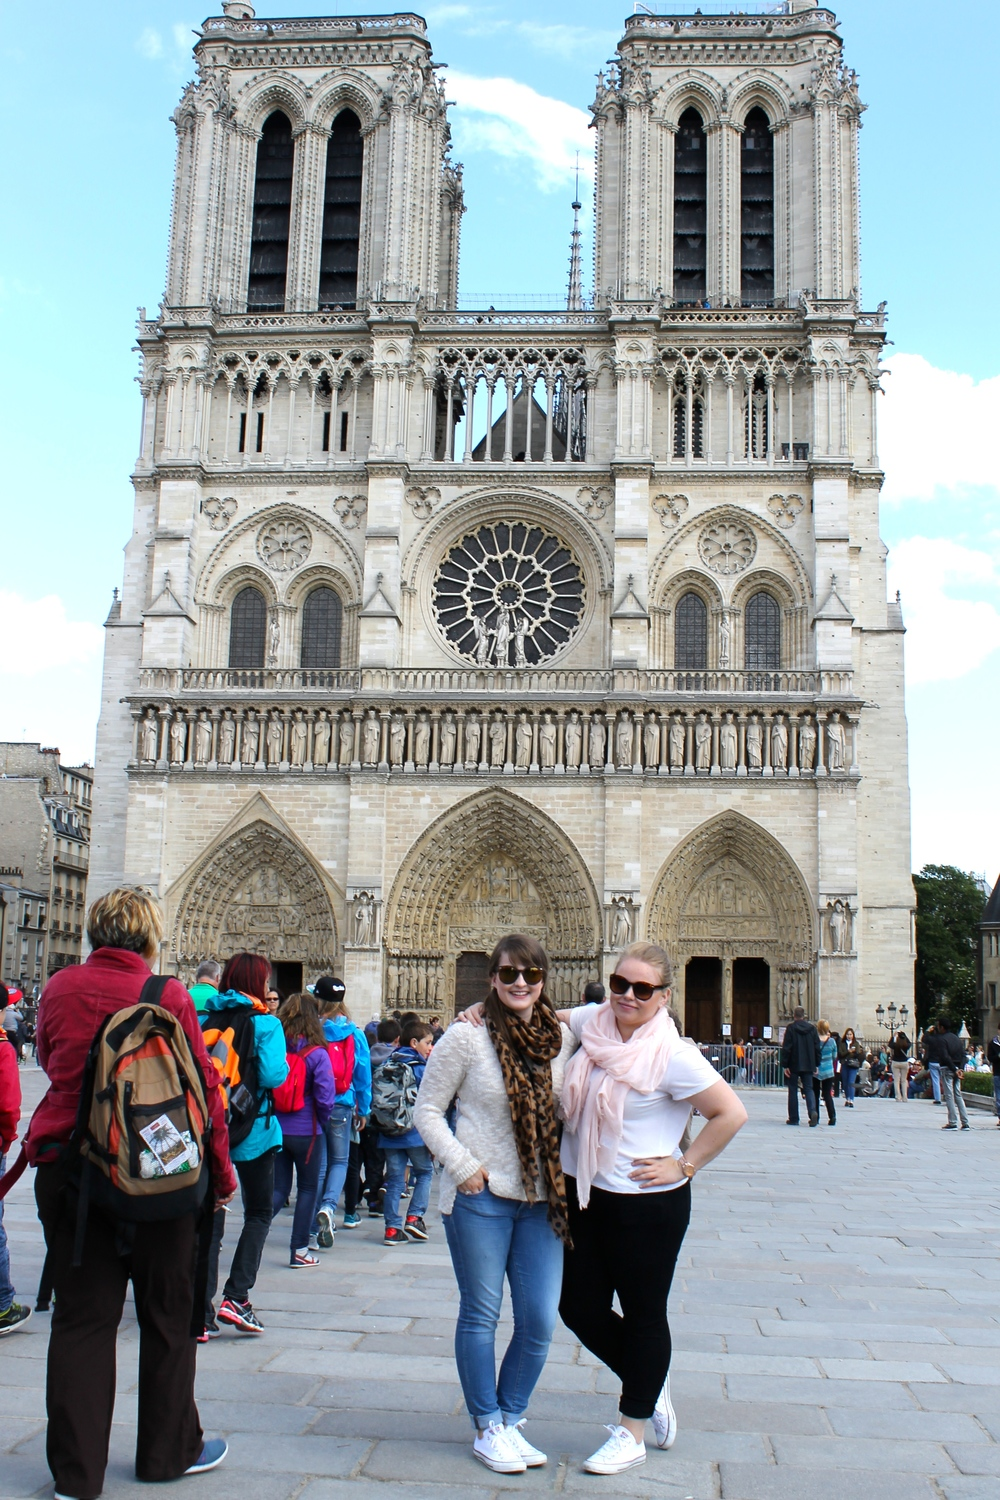 Notre Dame Church! It was amazing as well. I am so glad I was able to see all of these places. So truly thankful!